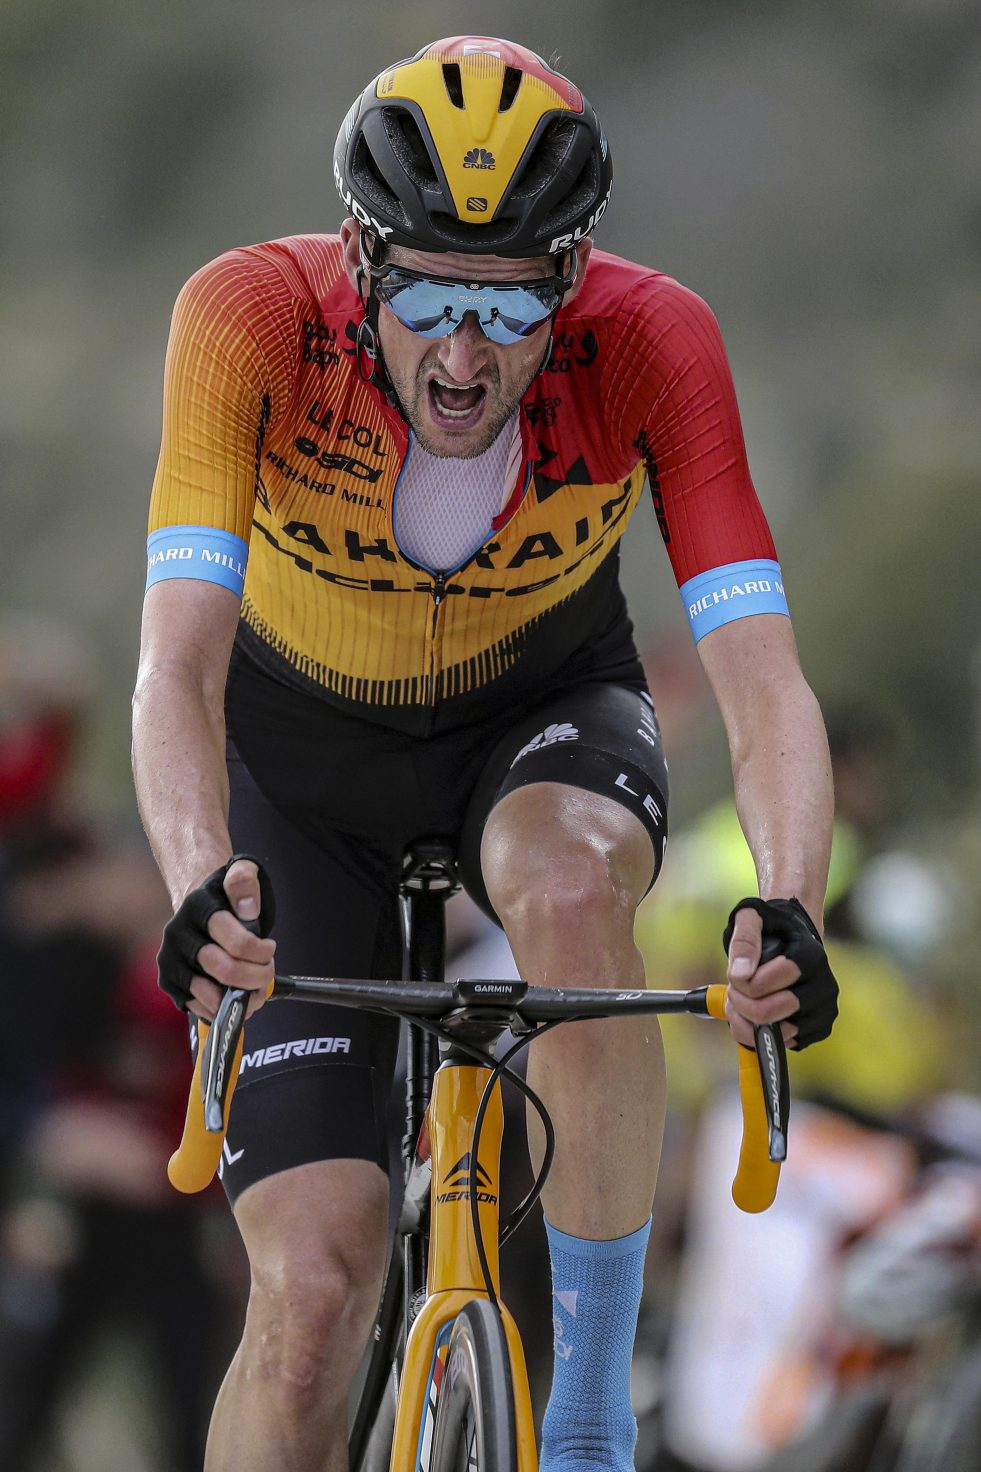 Wout Poels 2020